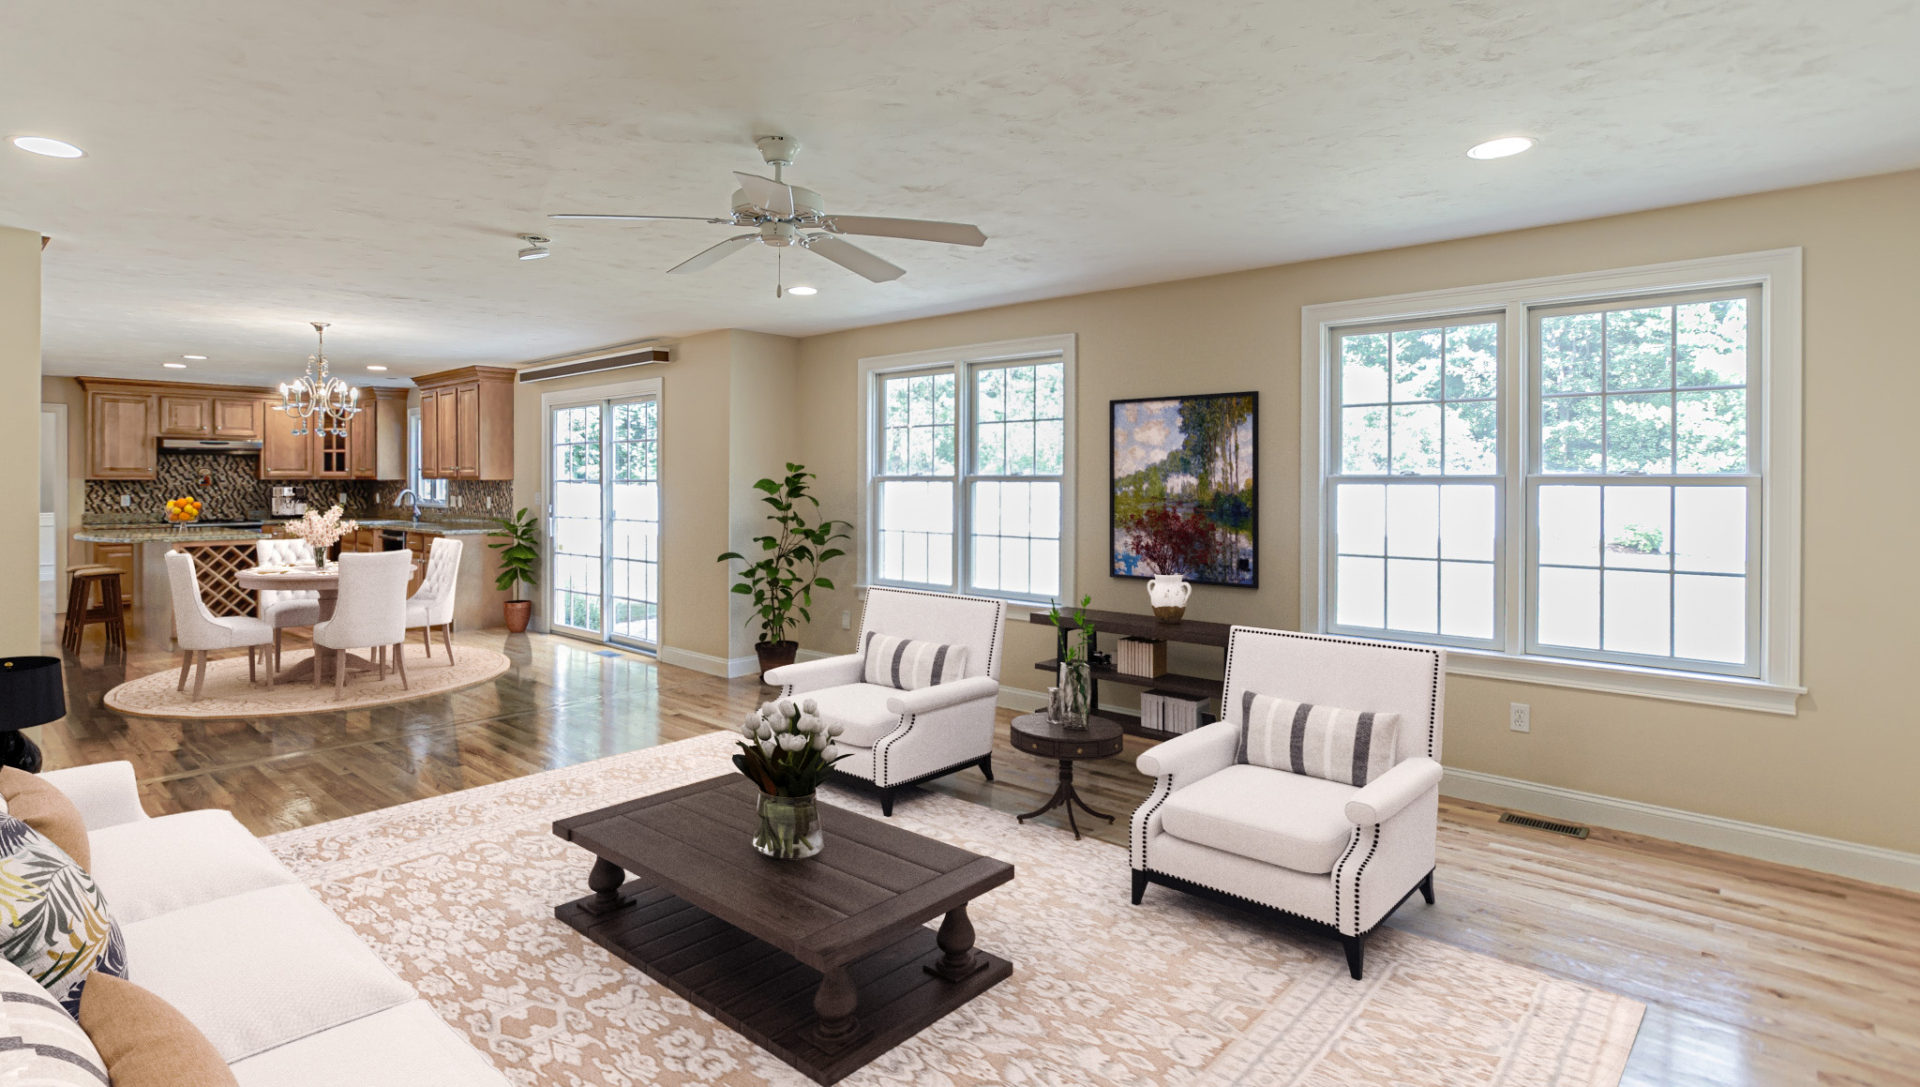 Virtually Staged Family Room in a 2-story colonial style home in Natick, MA.